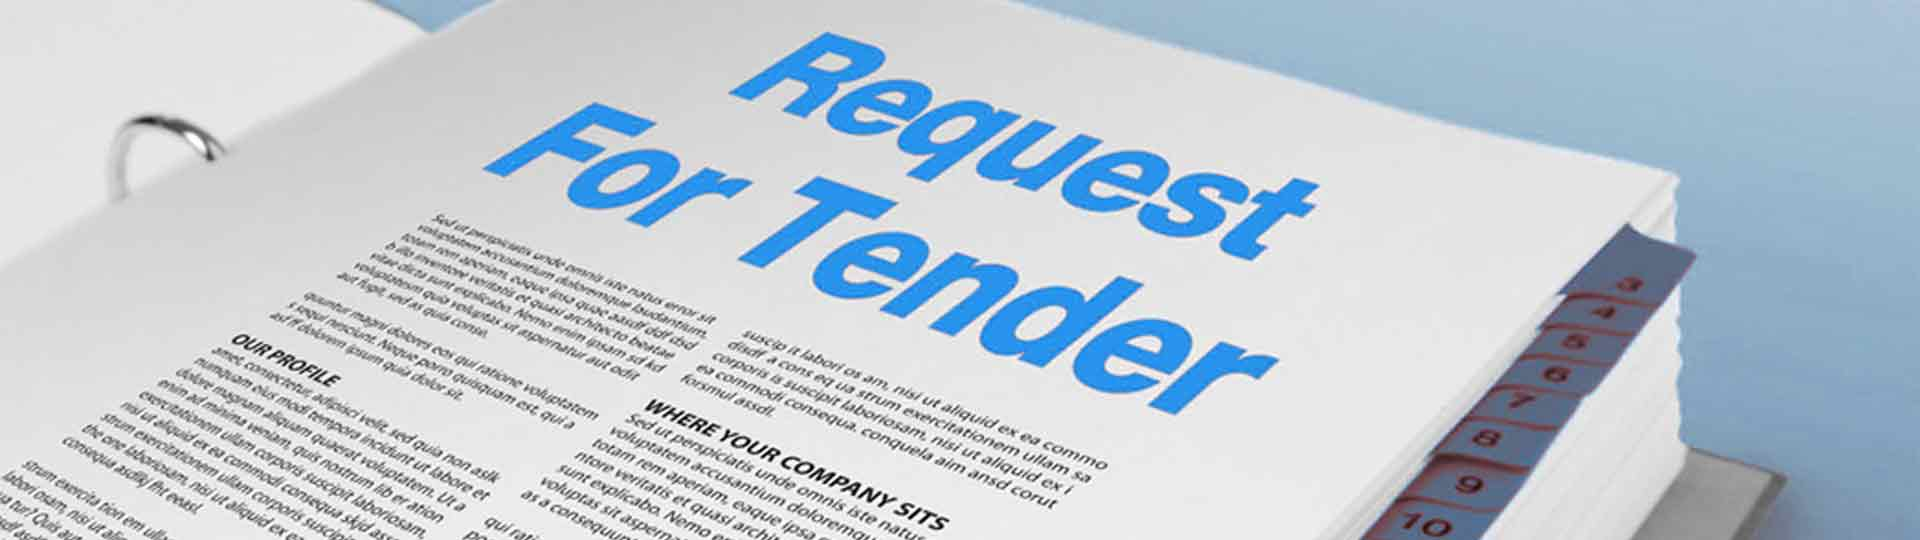 BroadWay Request For Tender Goes Live!